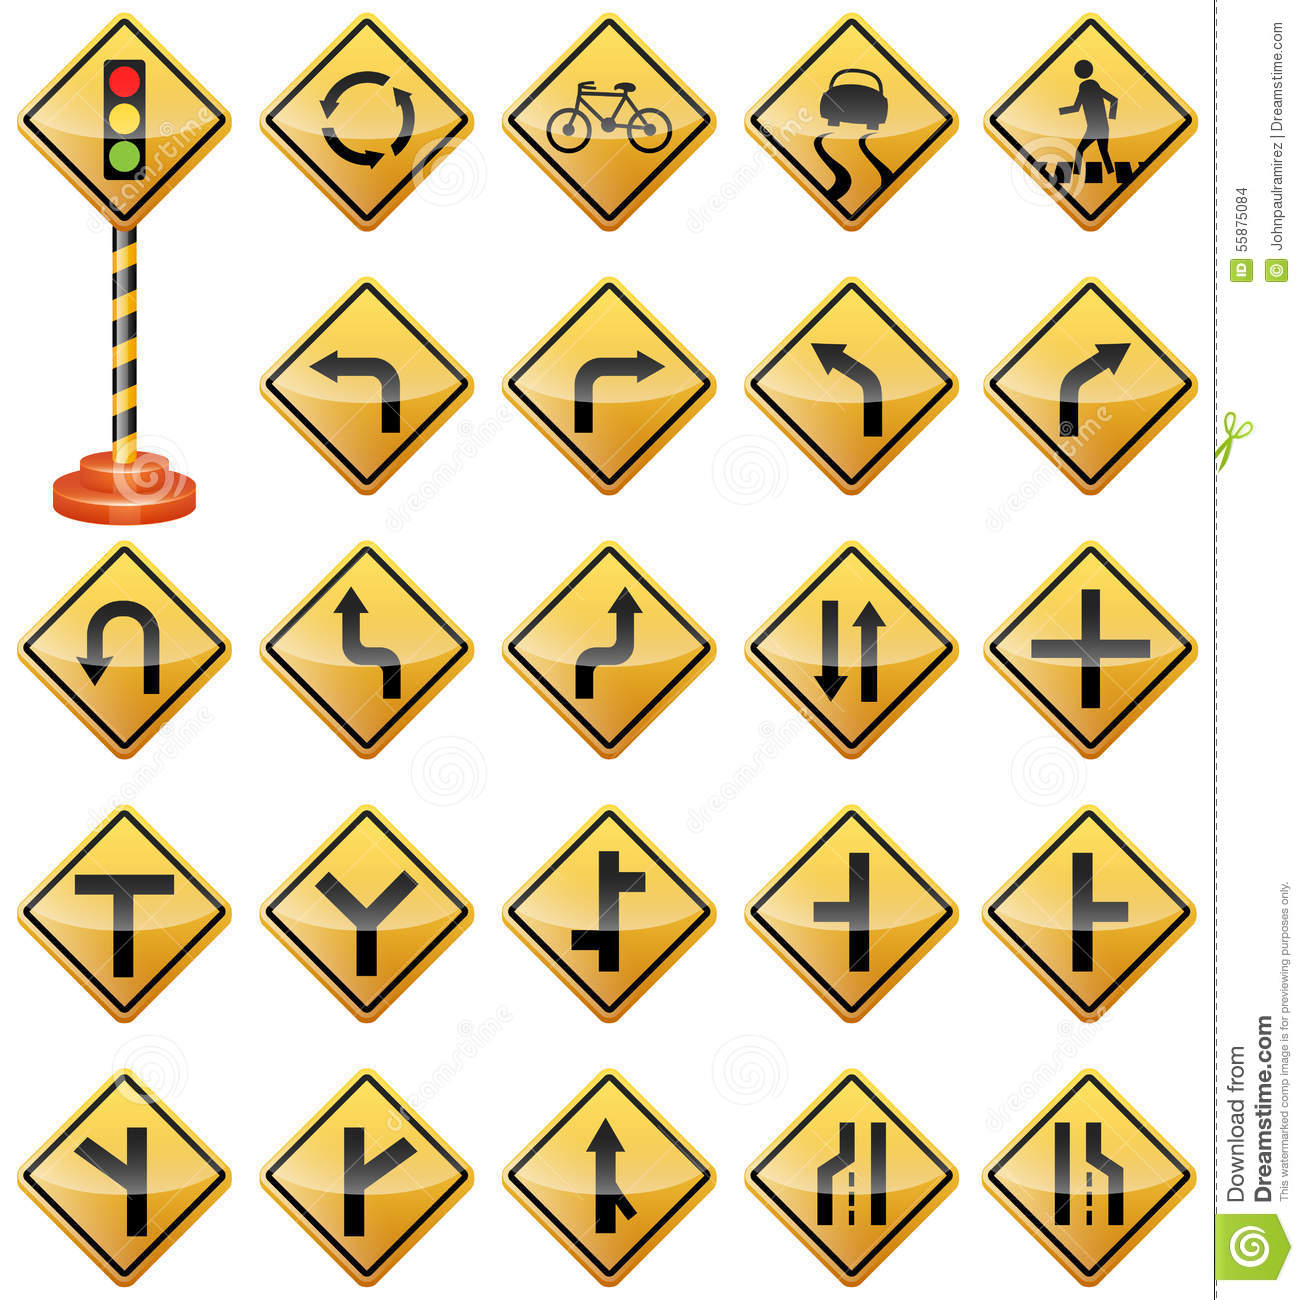 Vector illustration of road signs best for transportation safety travel signs and symbols concept